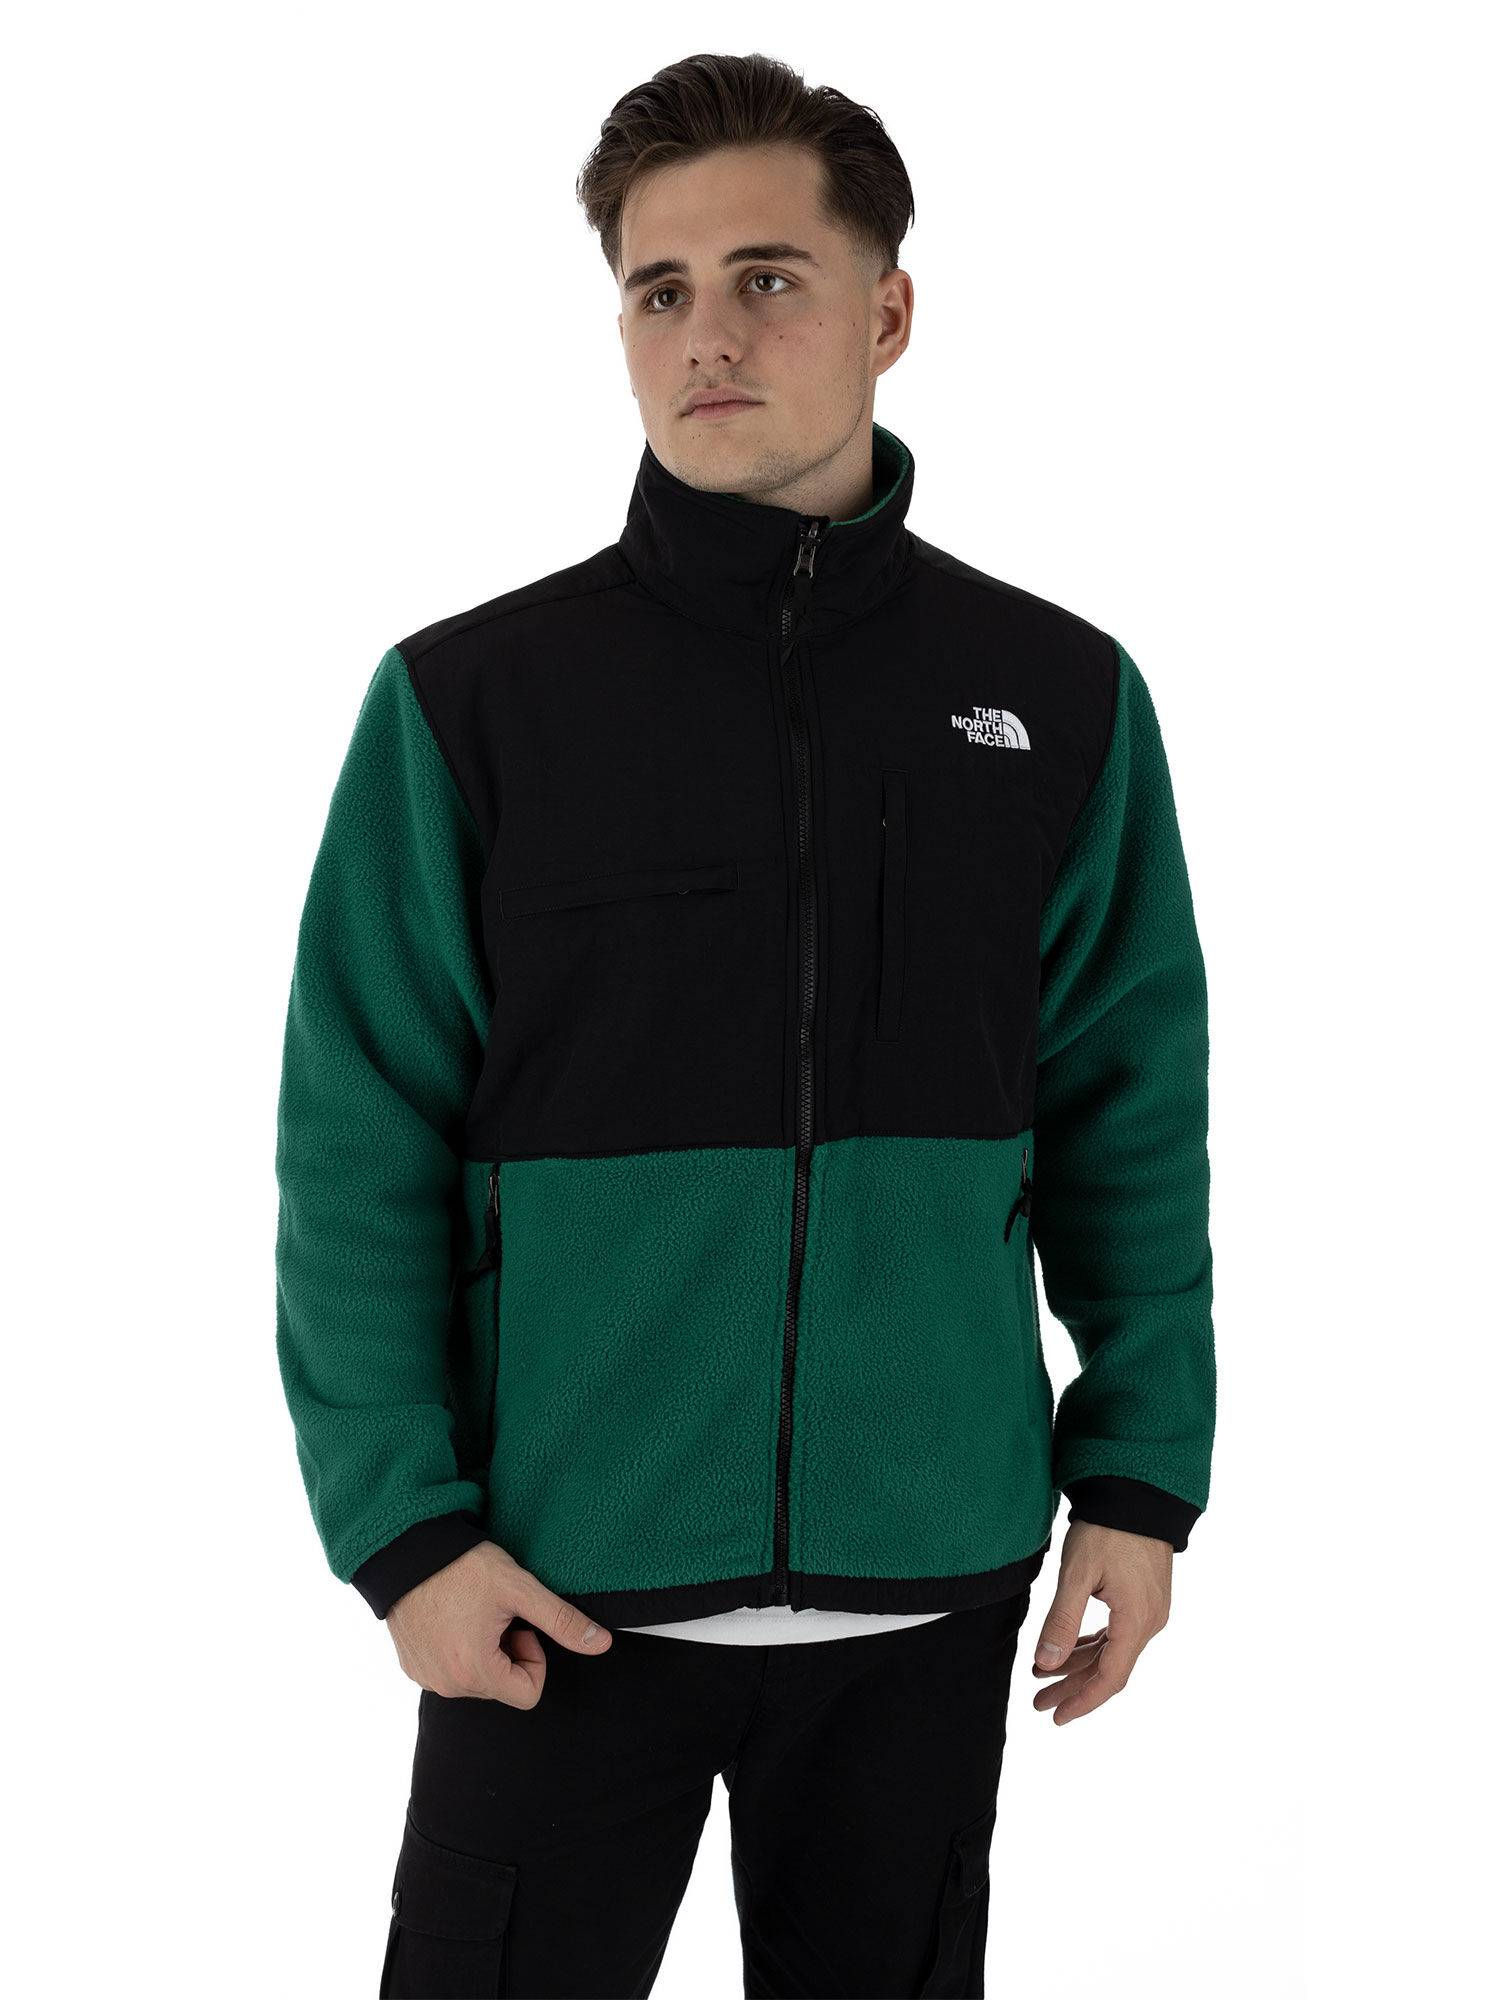 The North Face Denali 2, taille XS, homme, vert